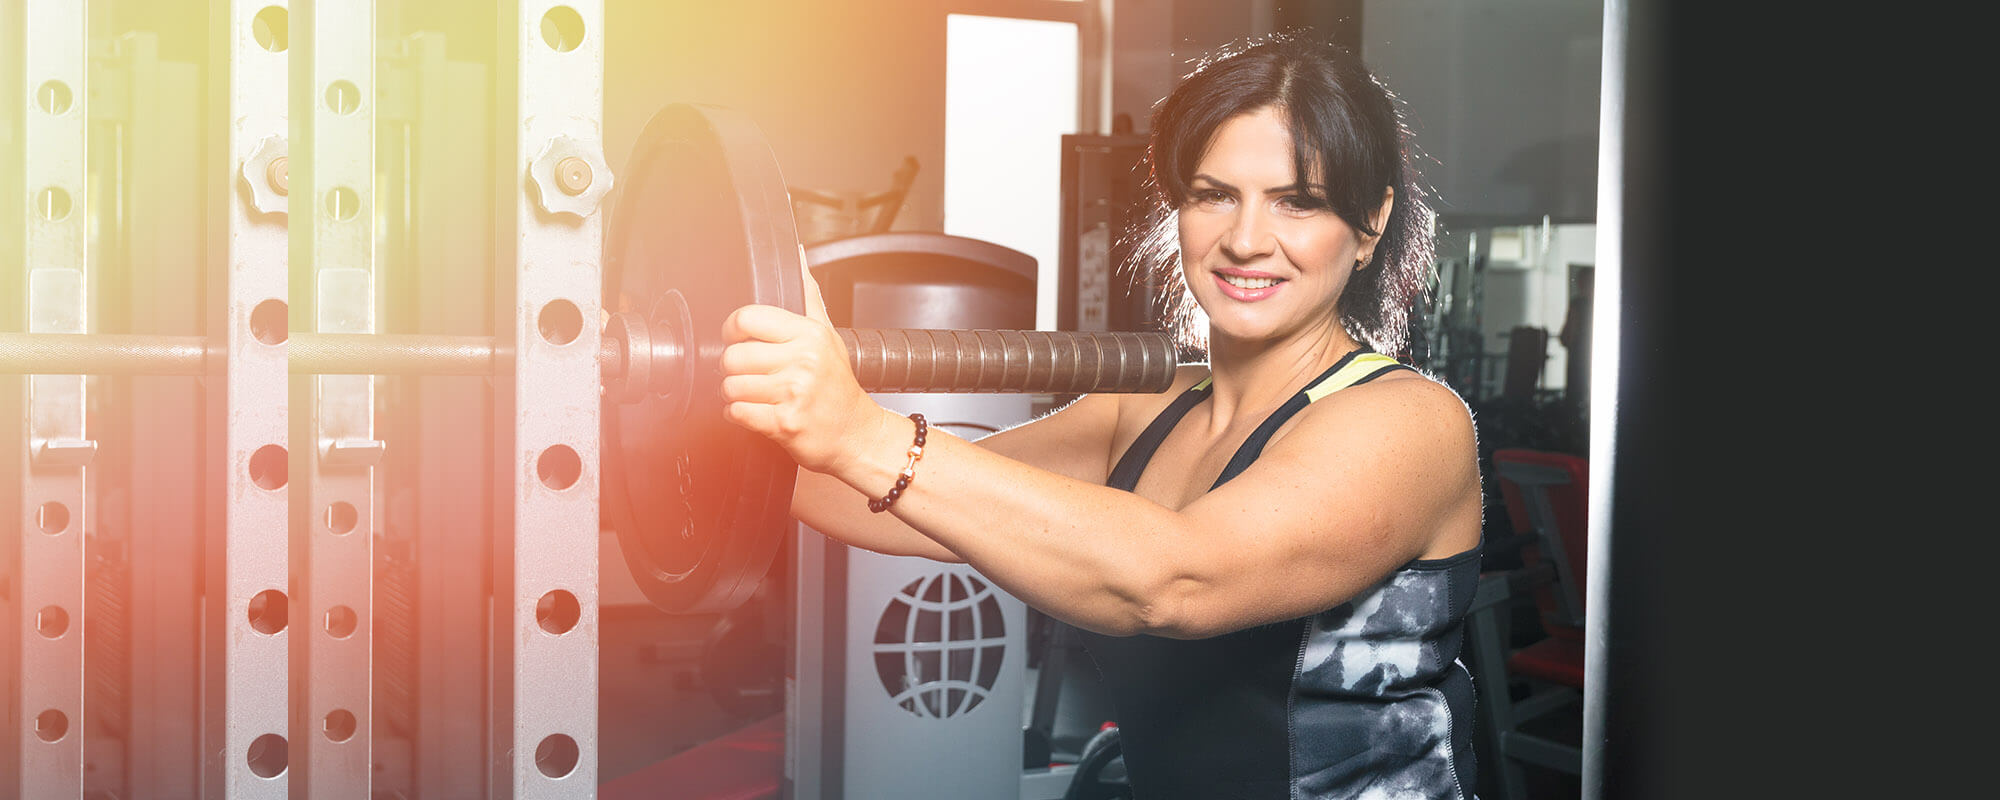 Fitness: Best Workout For Low Carb Diet